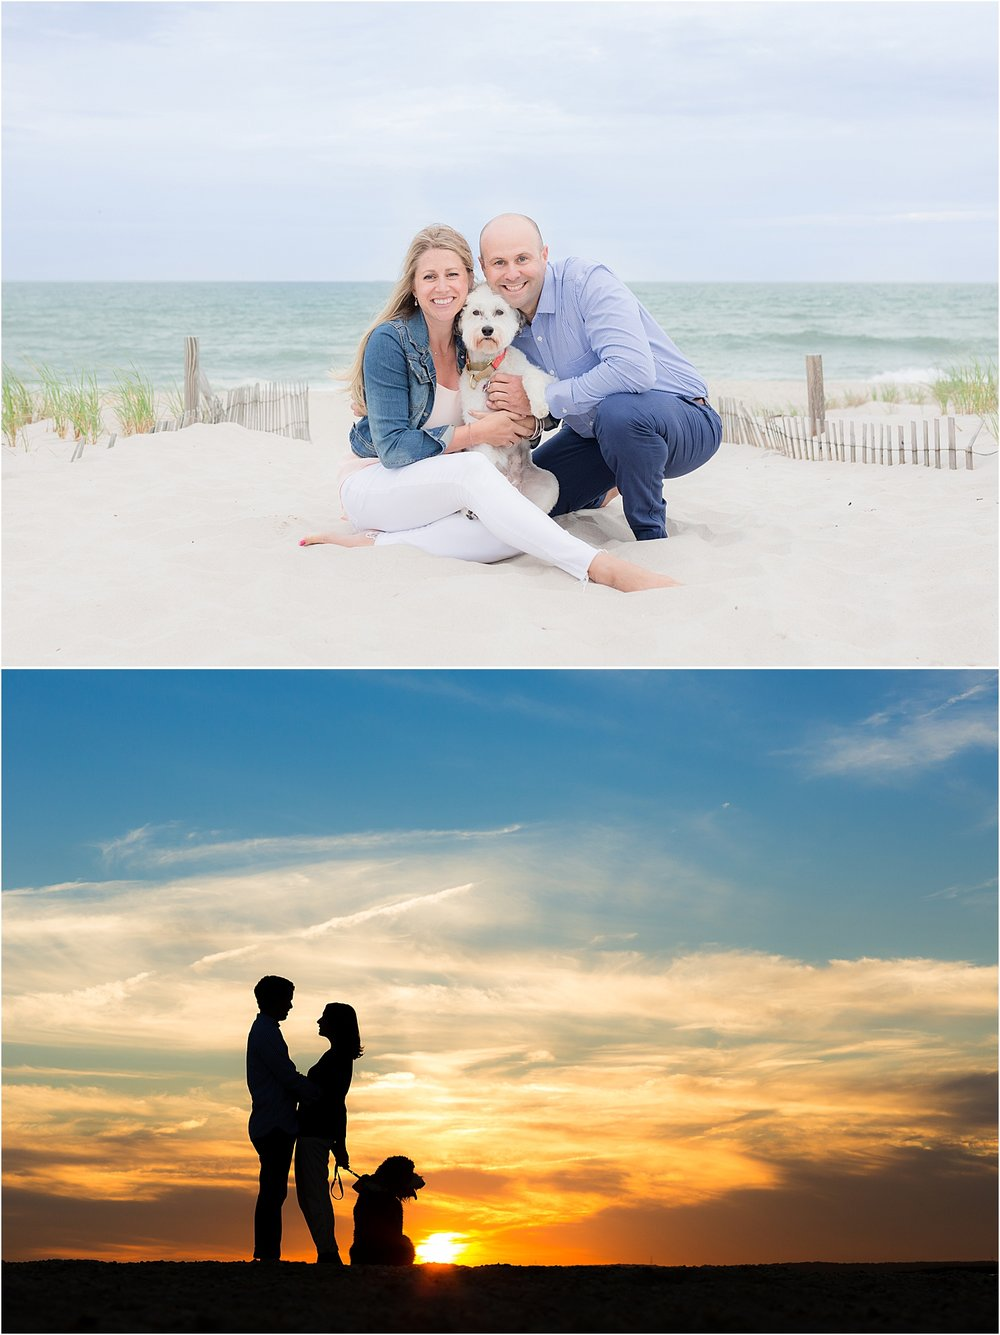 island beach state park nj engagement photo at sunset with their dog